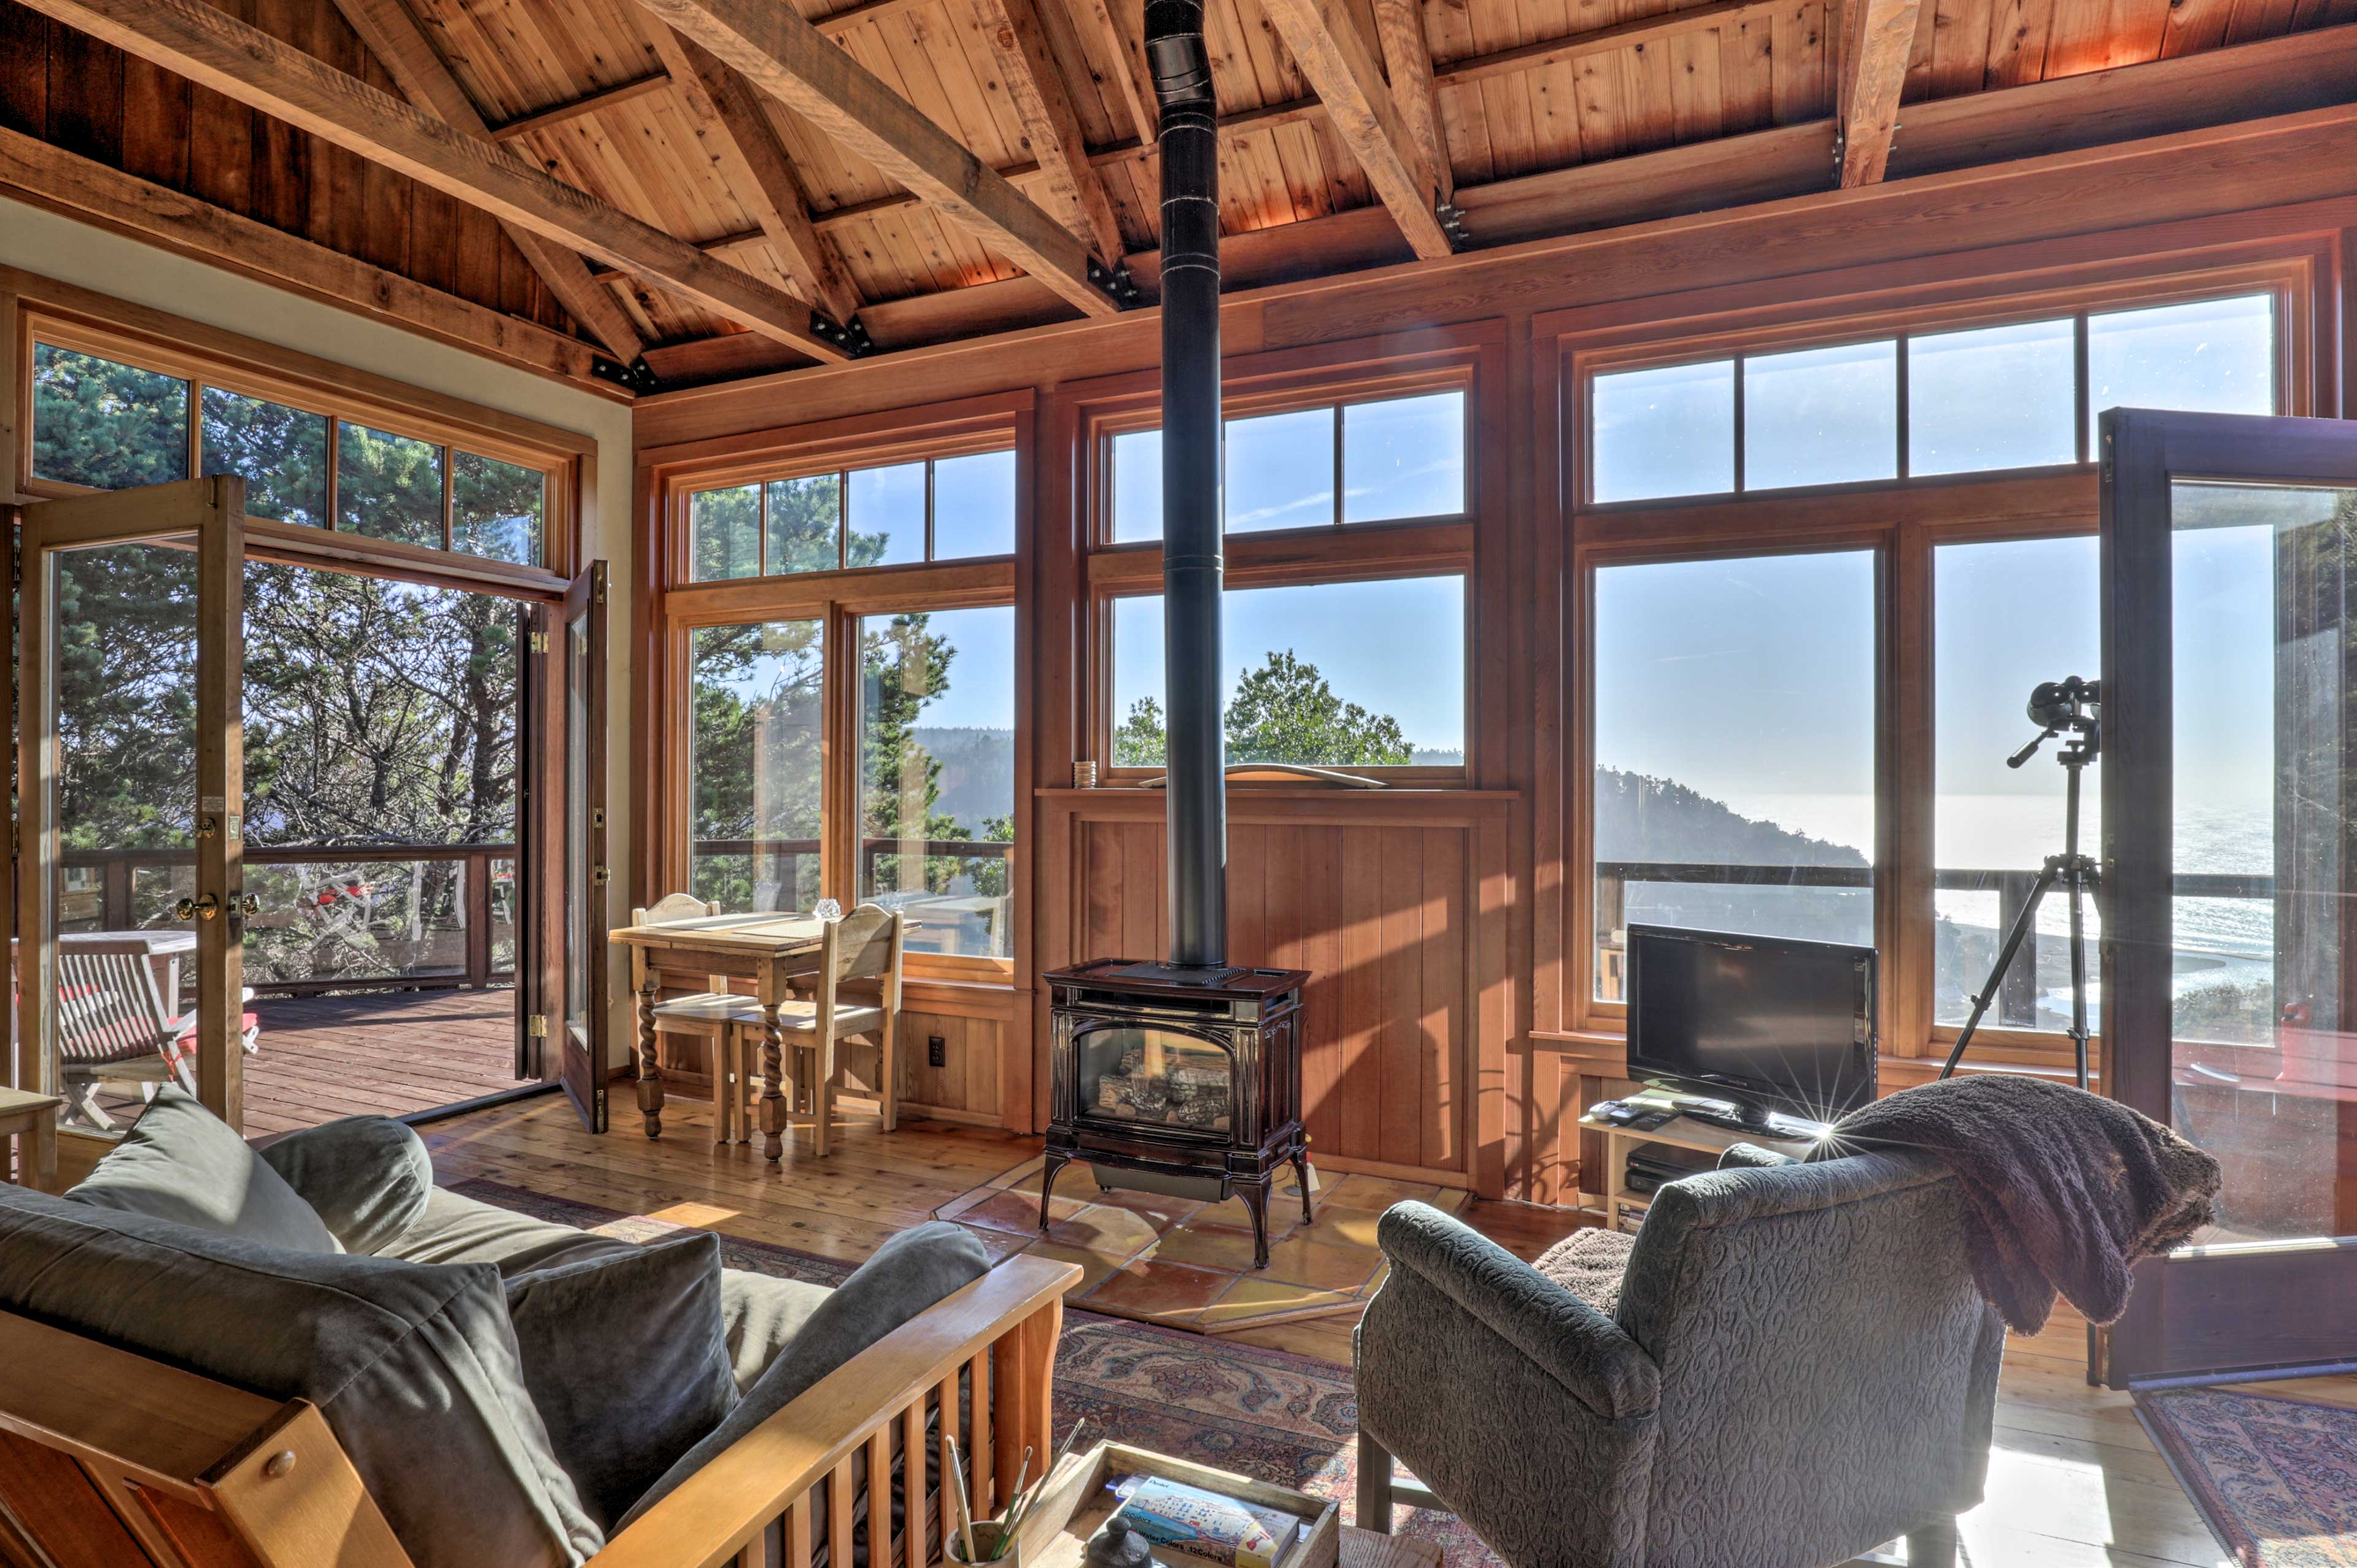 This 1-bedroom, 1-bath vacation rental sits on a hilltop in Albion!